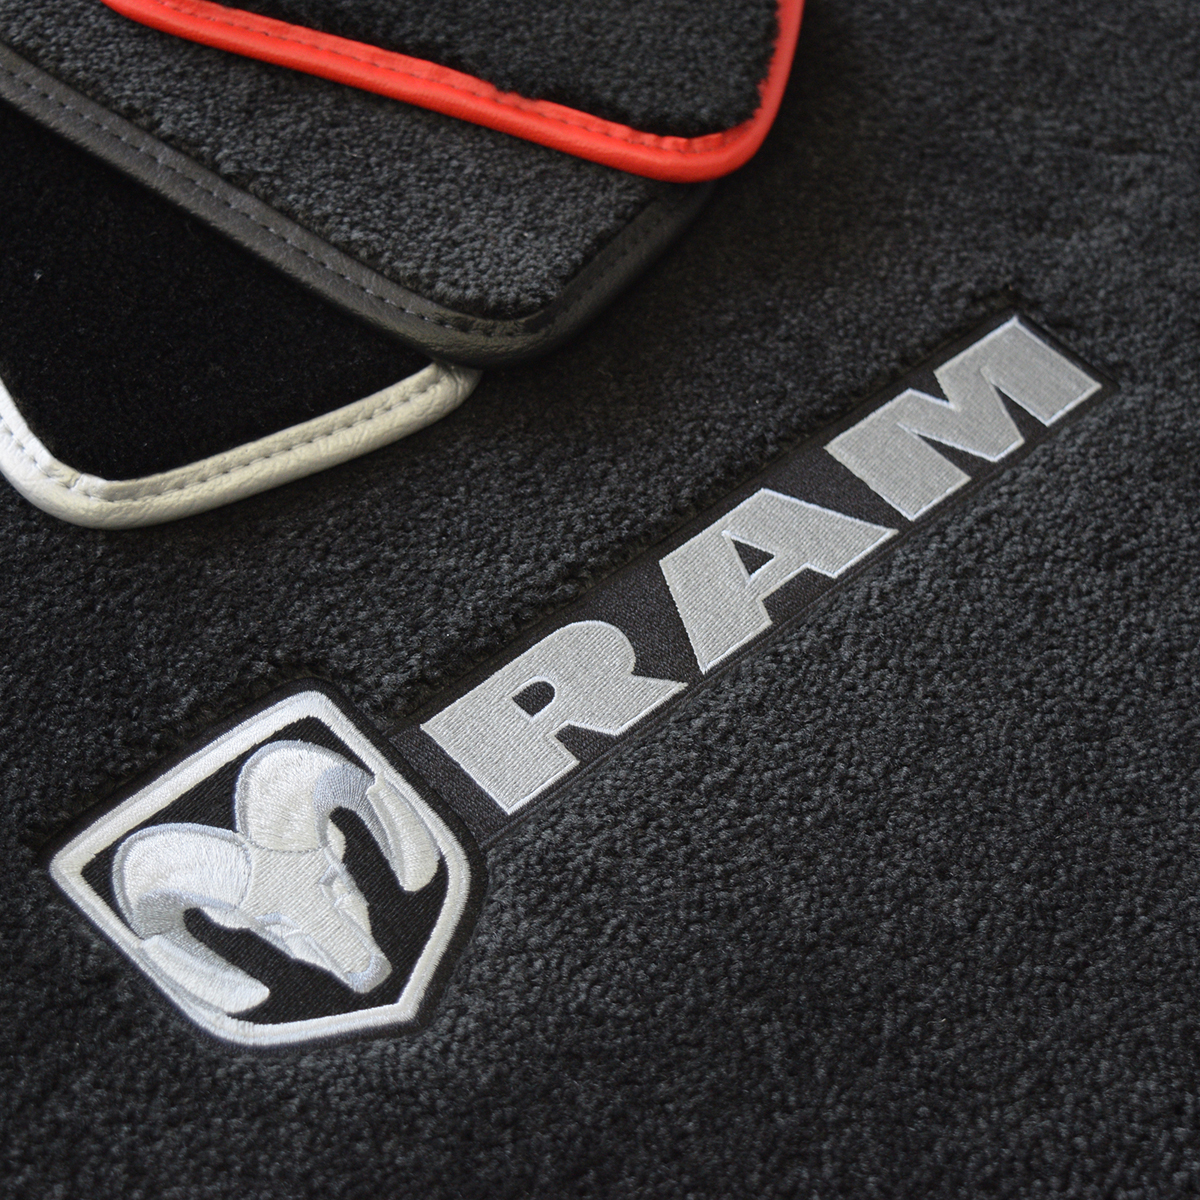 dodge ram floors rubber row mat logo mats red floor black with plasticolor